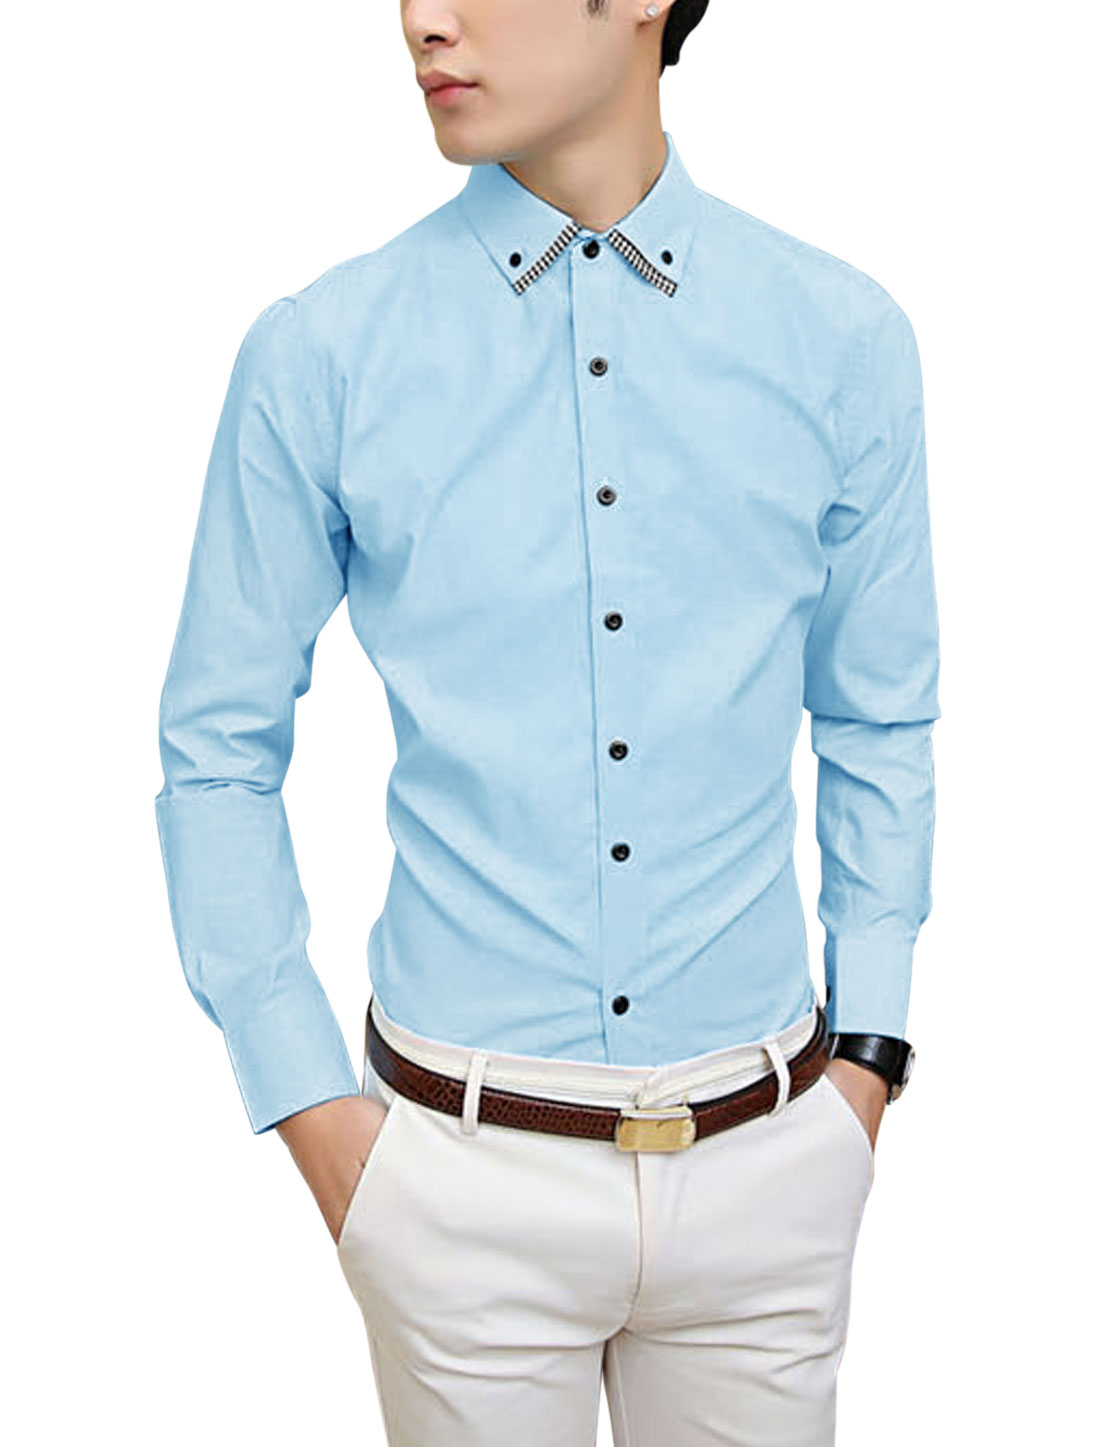 Single Breasted Point Collar Fashion Sky Blue Shirt for Man M